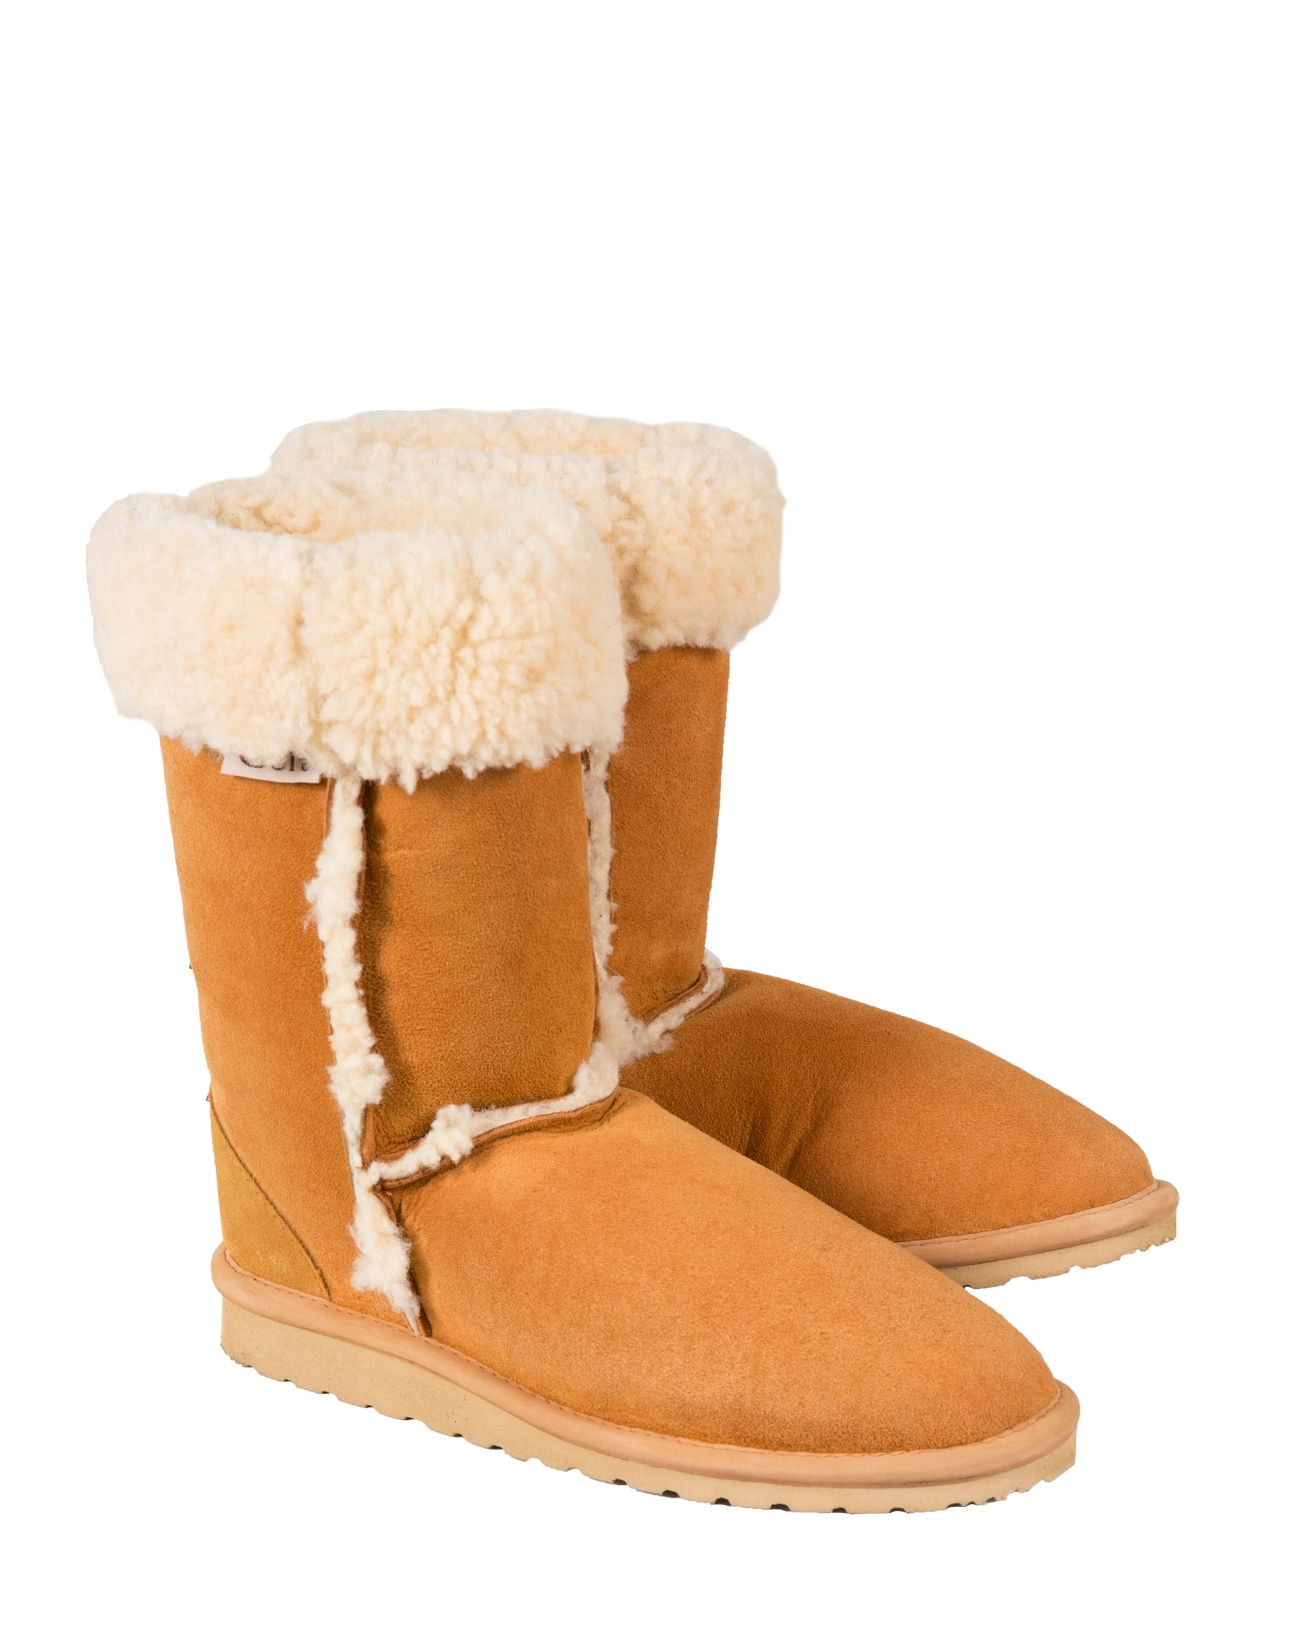 Mens Sheepskin Rustic Boots - Size 12 - Whisky - 177